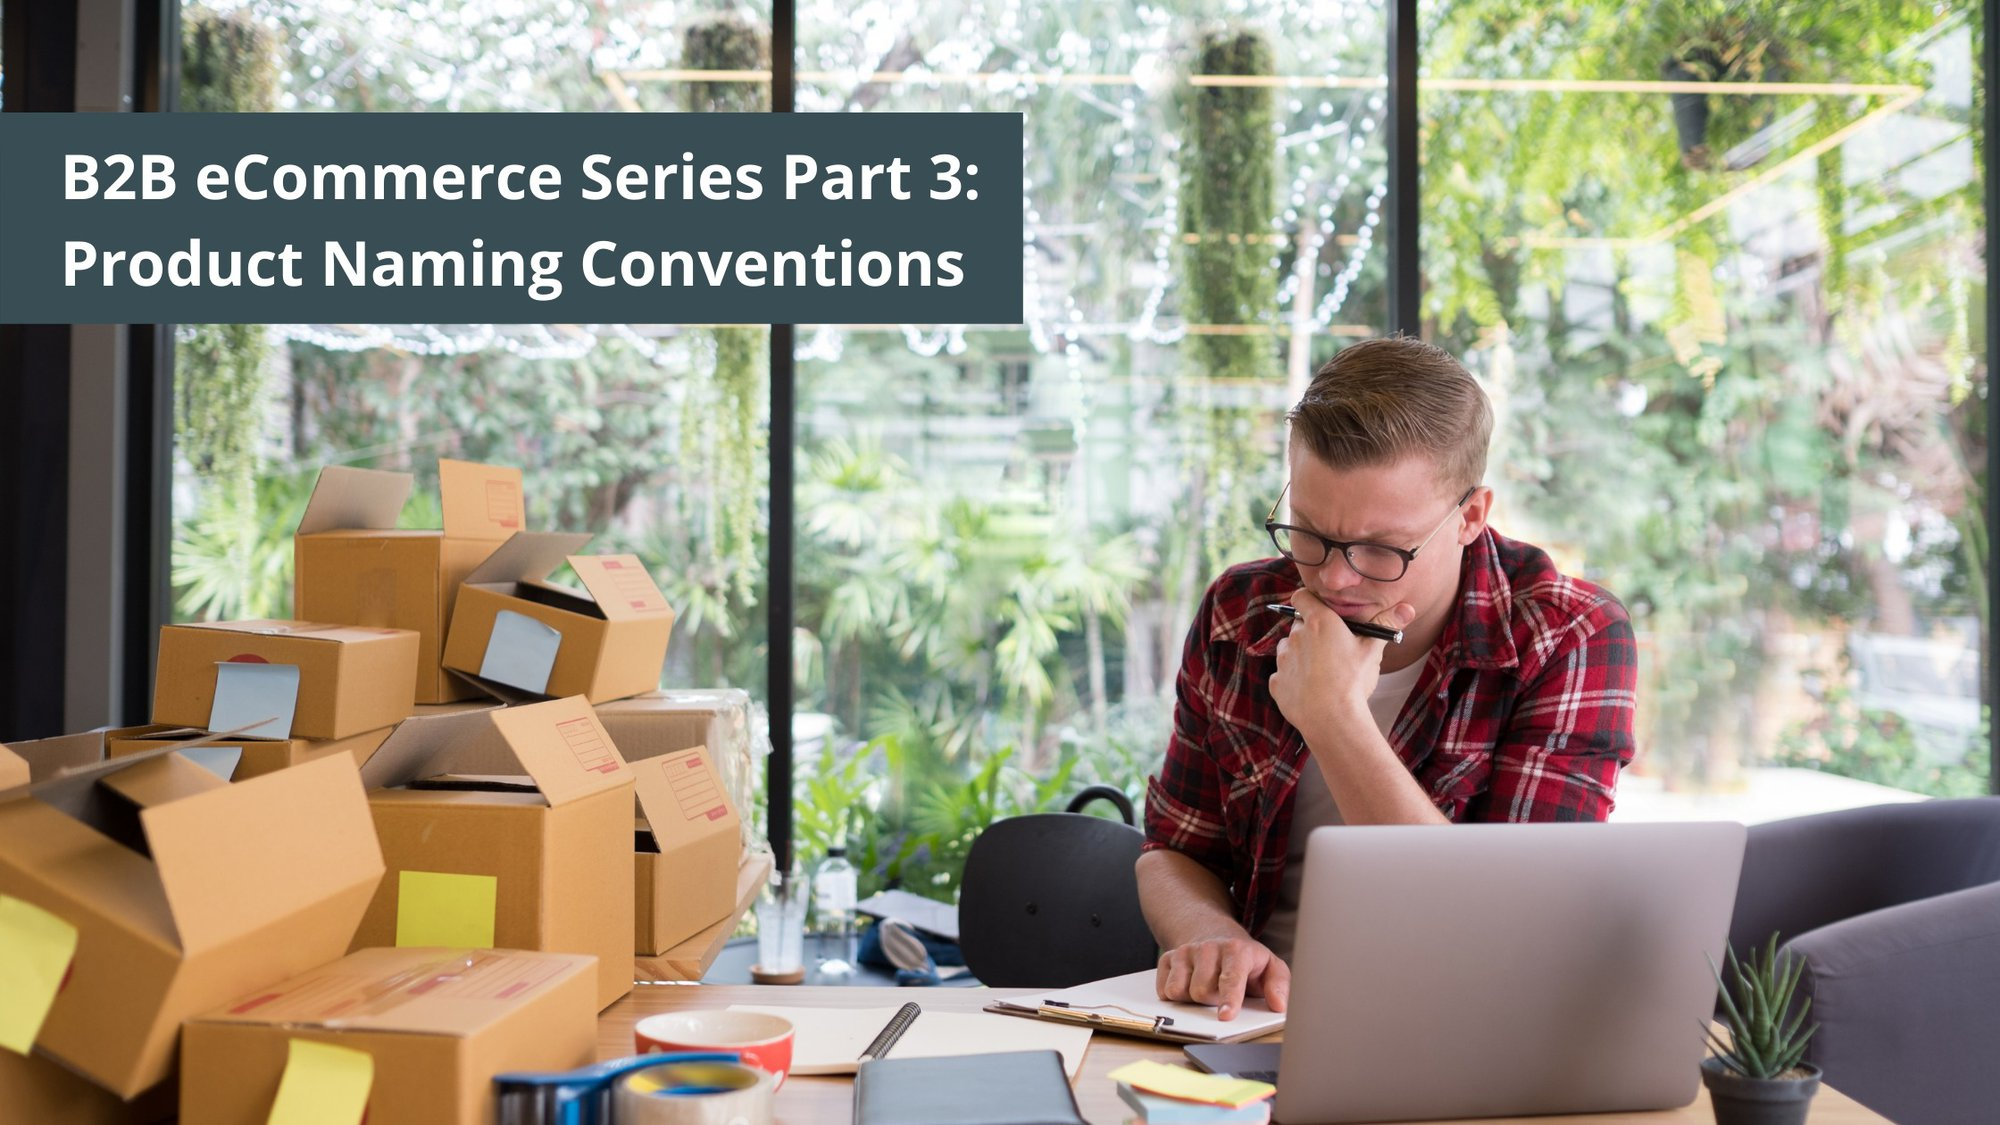 B2B eCommerce Series Part 3: Product Naming Conventions